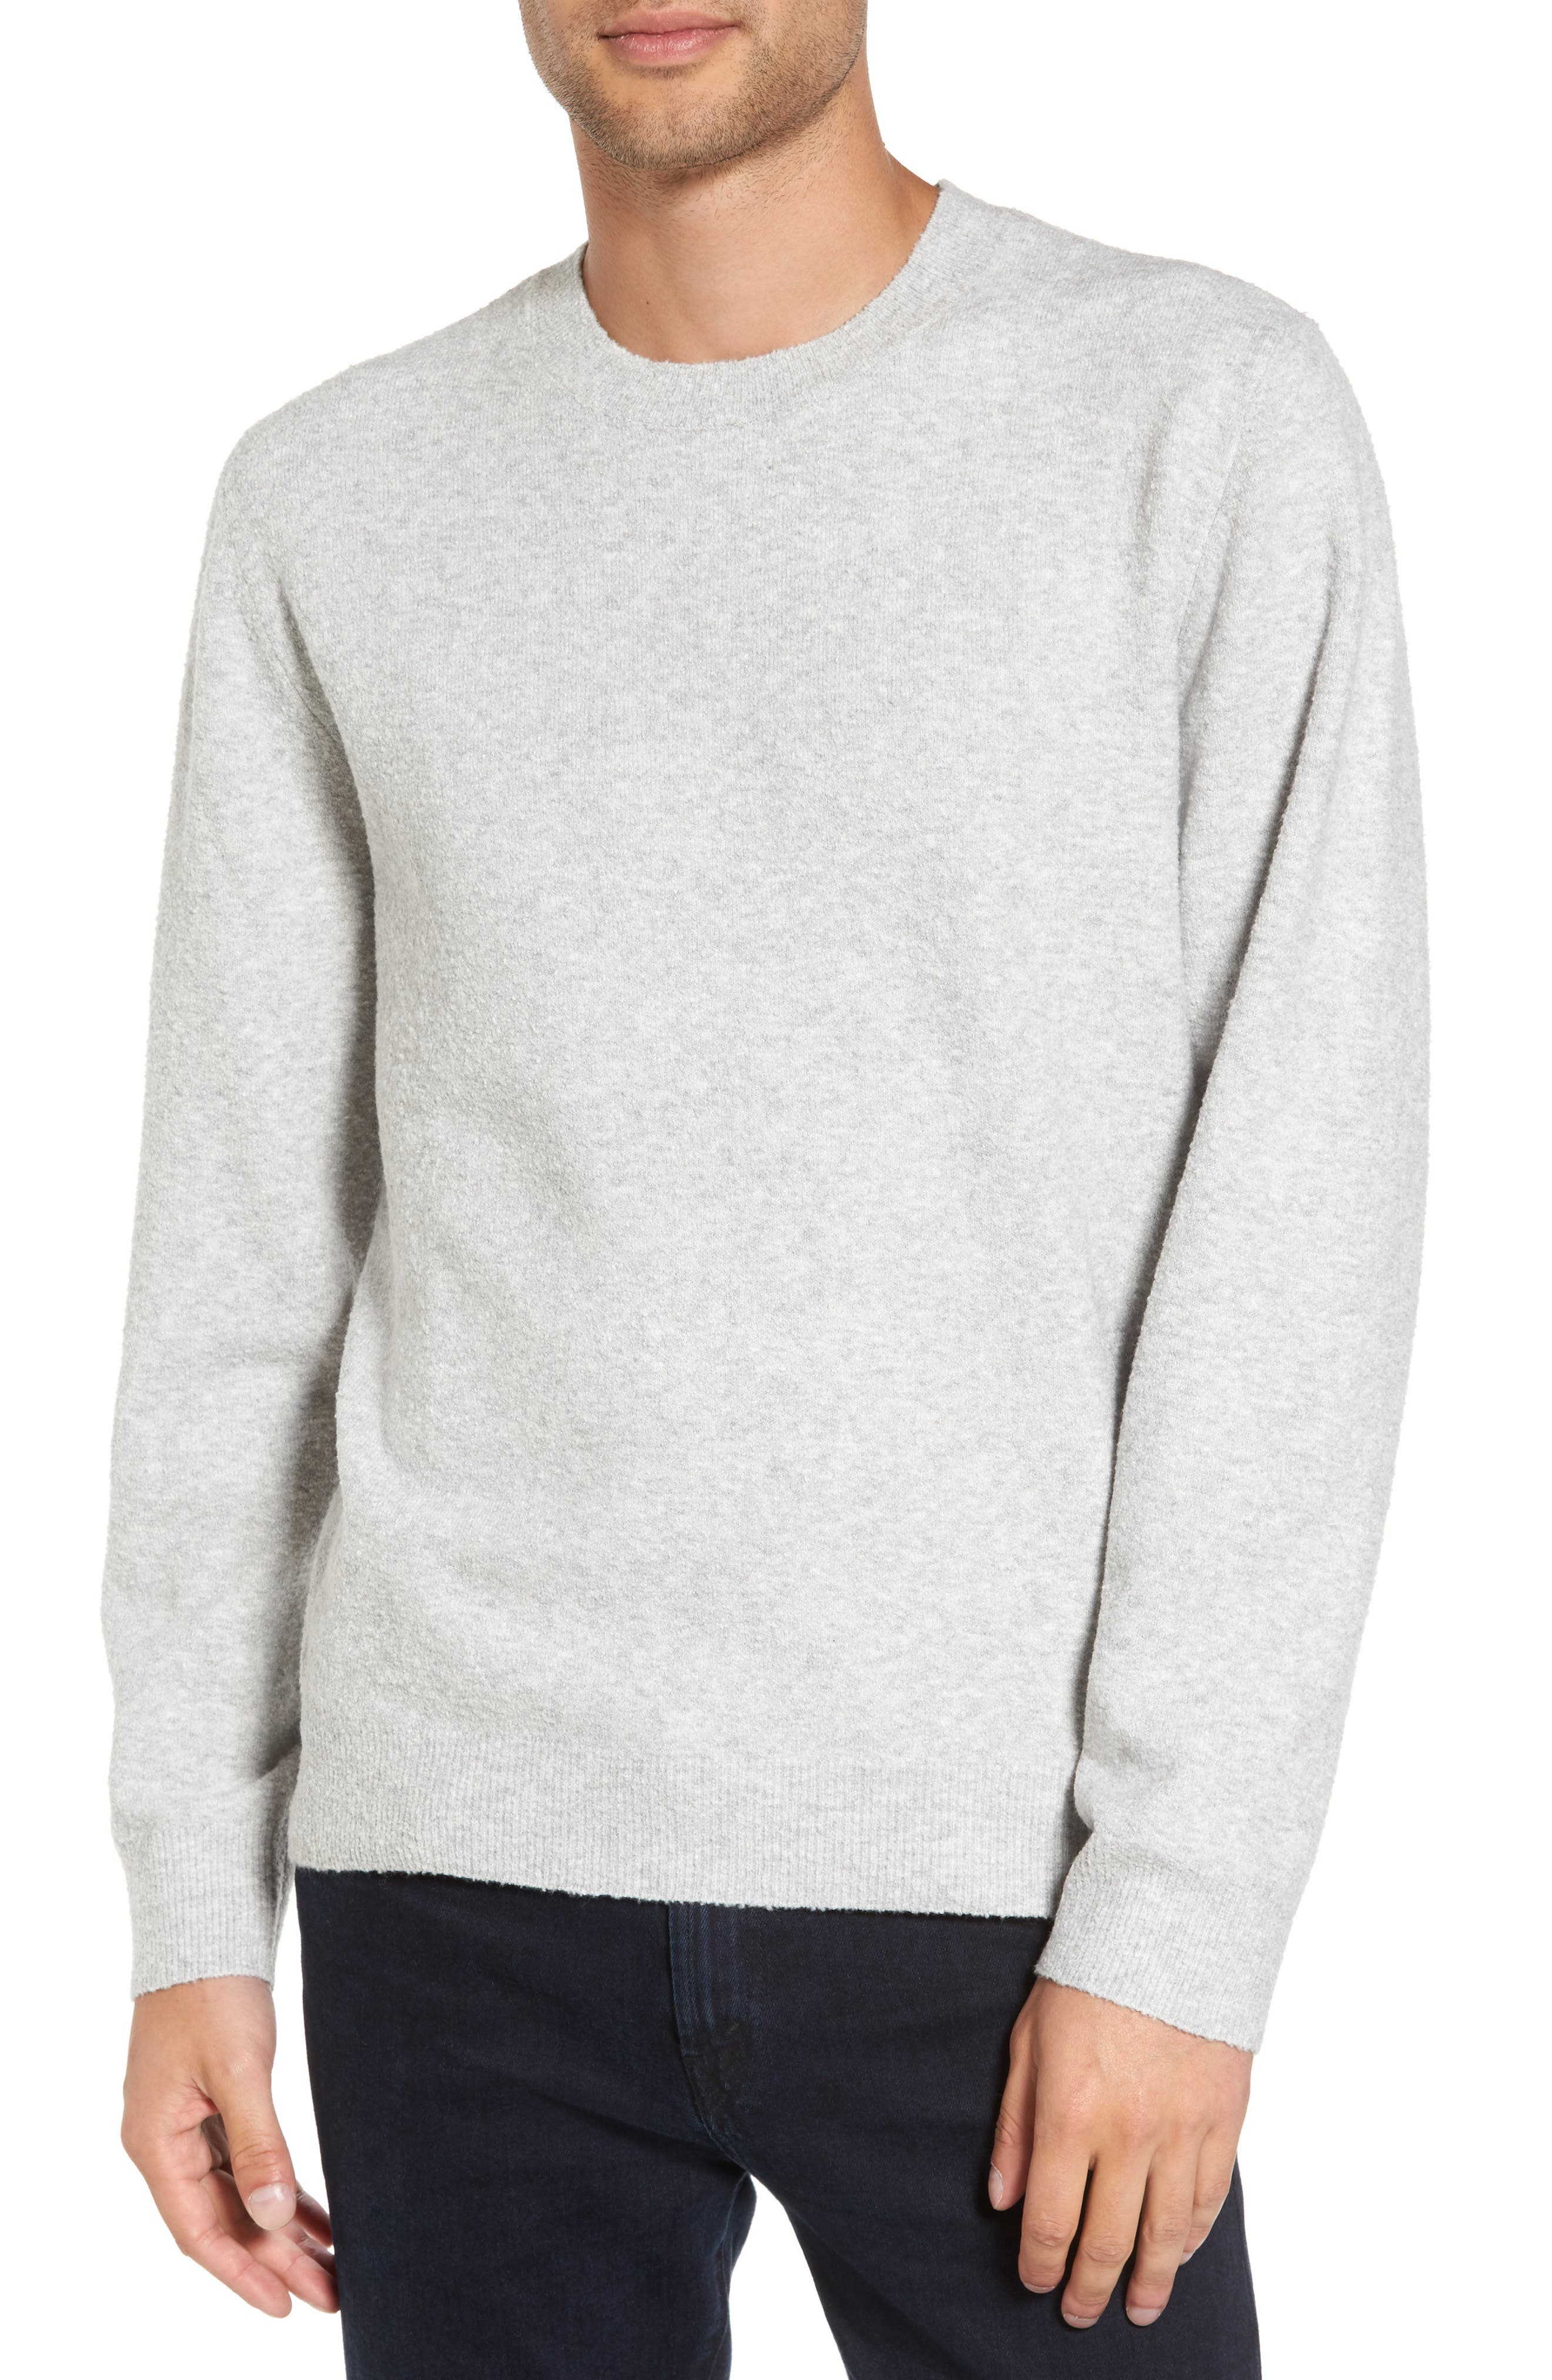 Nathaniel Classic Fit Sweater,                         Main,                         color, Lunar Surface